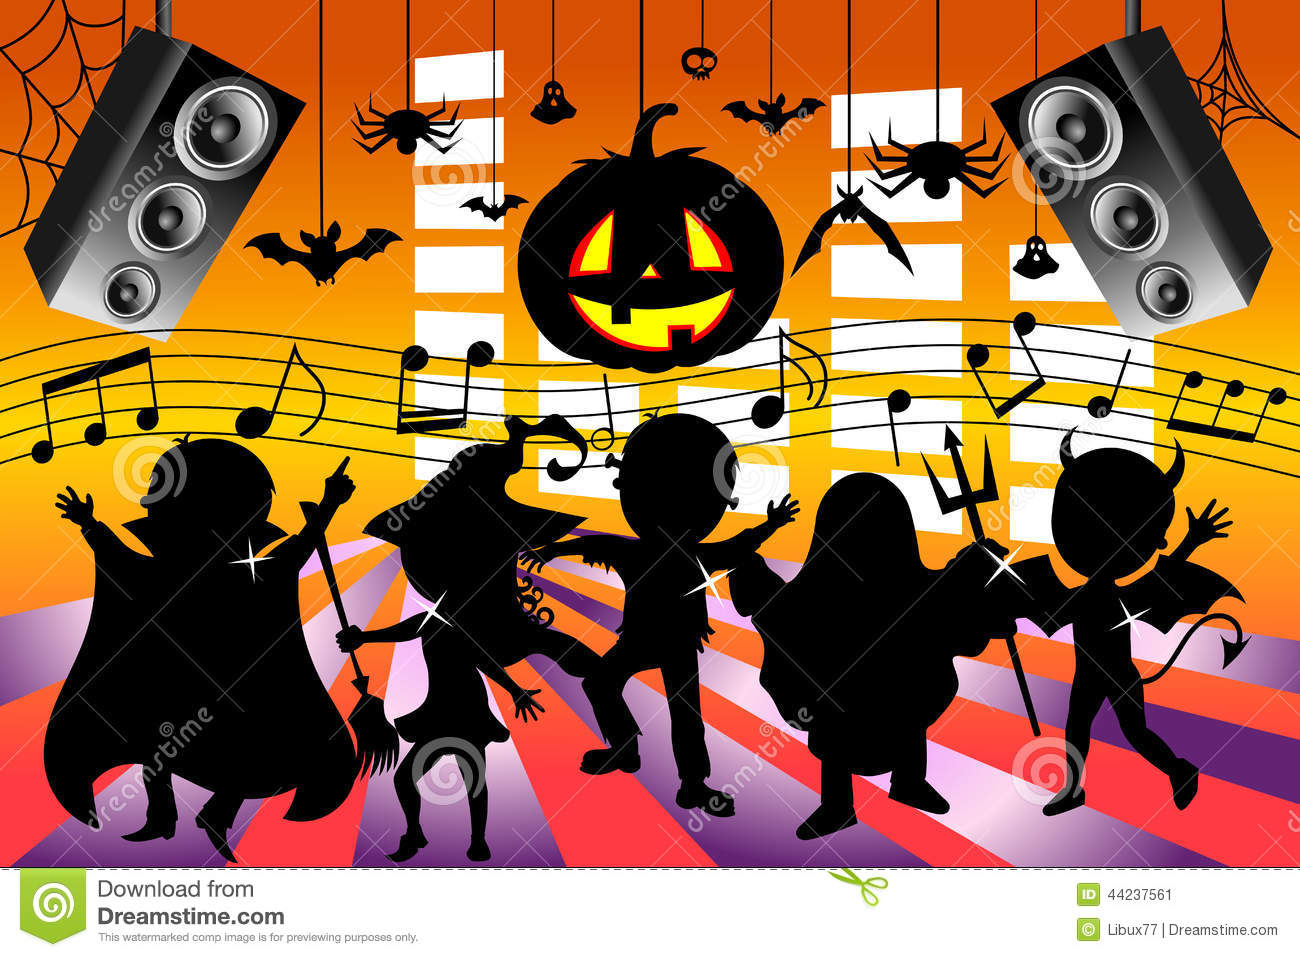 coloring pages halloween pumpkin archives printable coloring 702 silhouette kids dancing halloween party featuring children